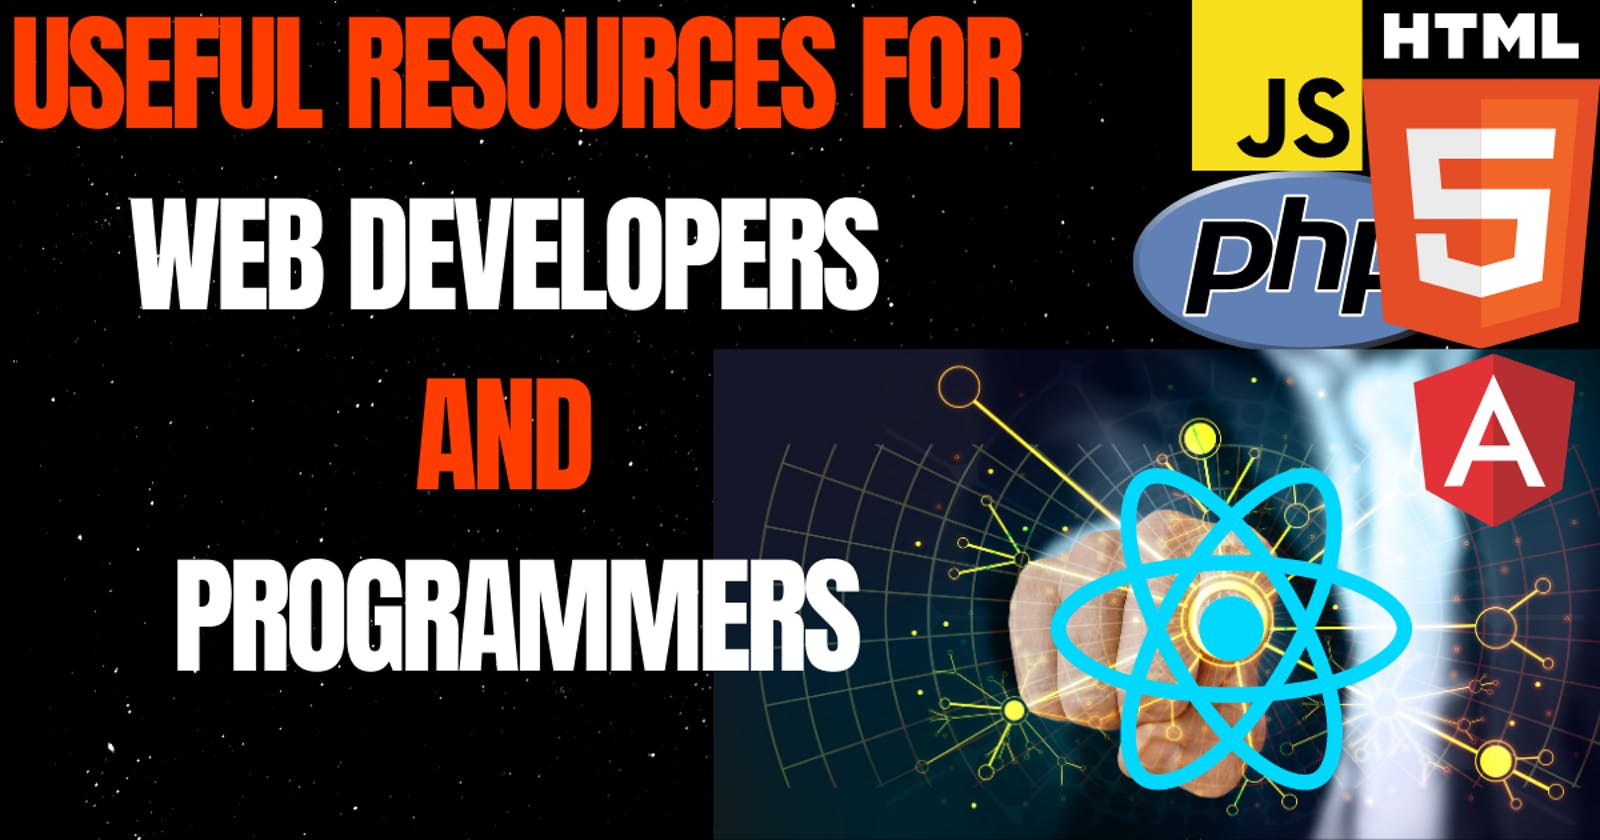 Useful Resources for Programmers and Web Developers